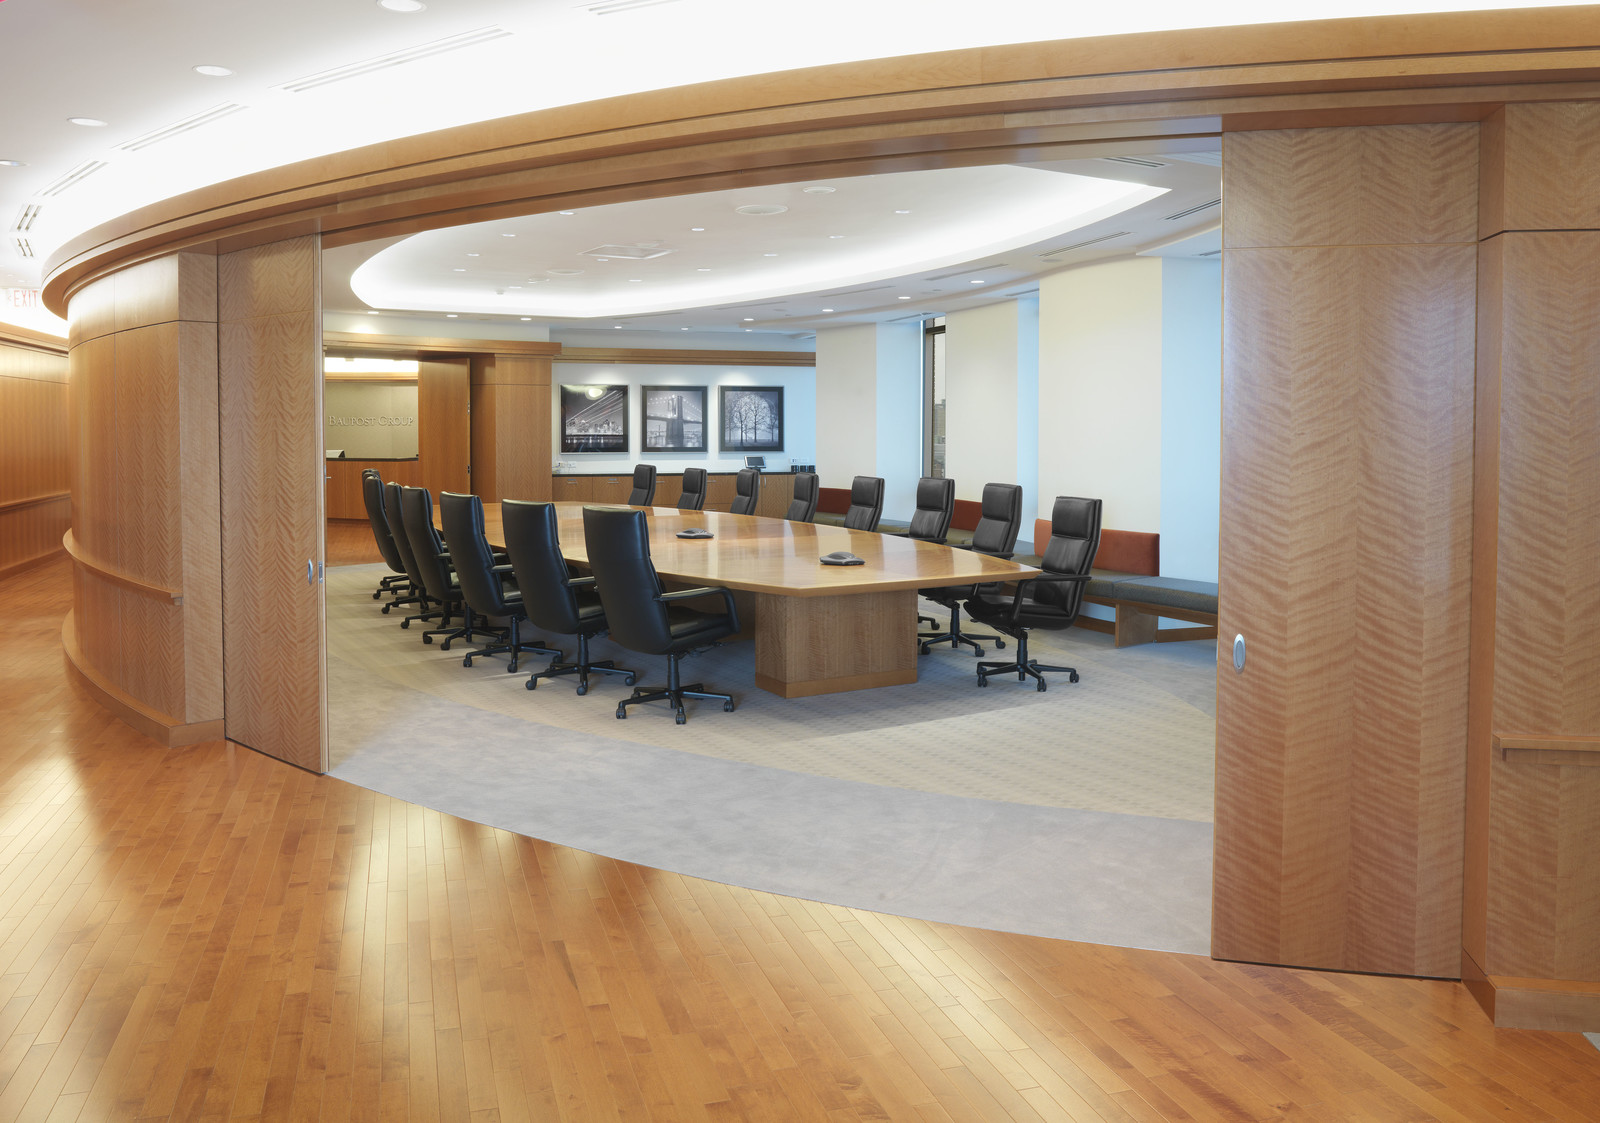 Curved entrance and wall paneling top off a gorgeous custom wood conference table.